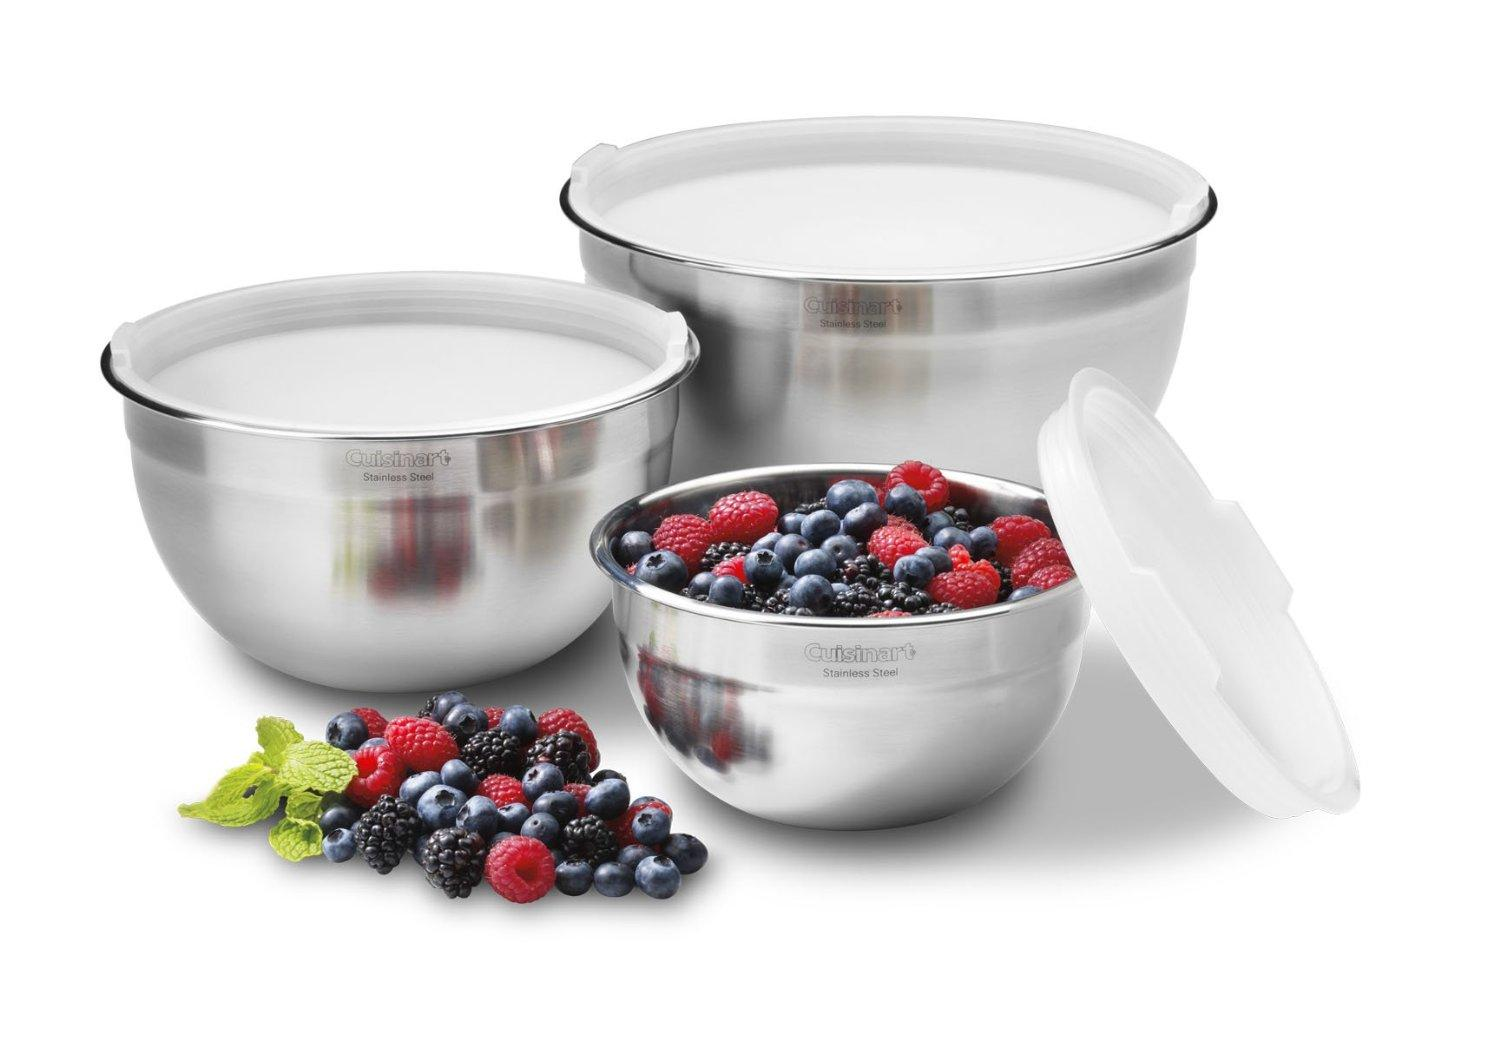 Cuisinart Stainless Steel Mixing Bowls with Lids (Set of 3)